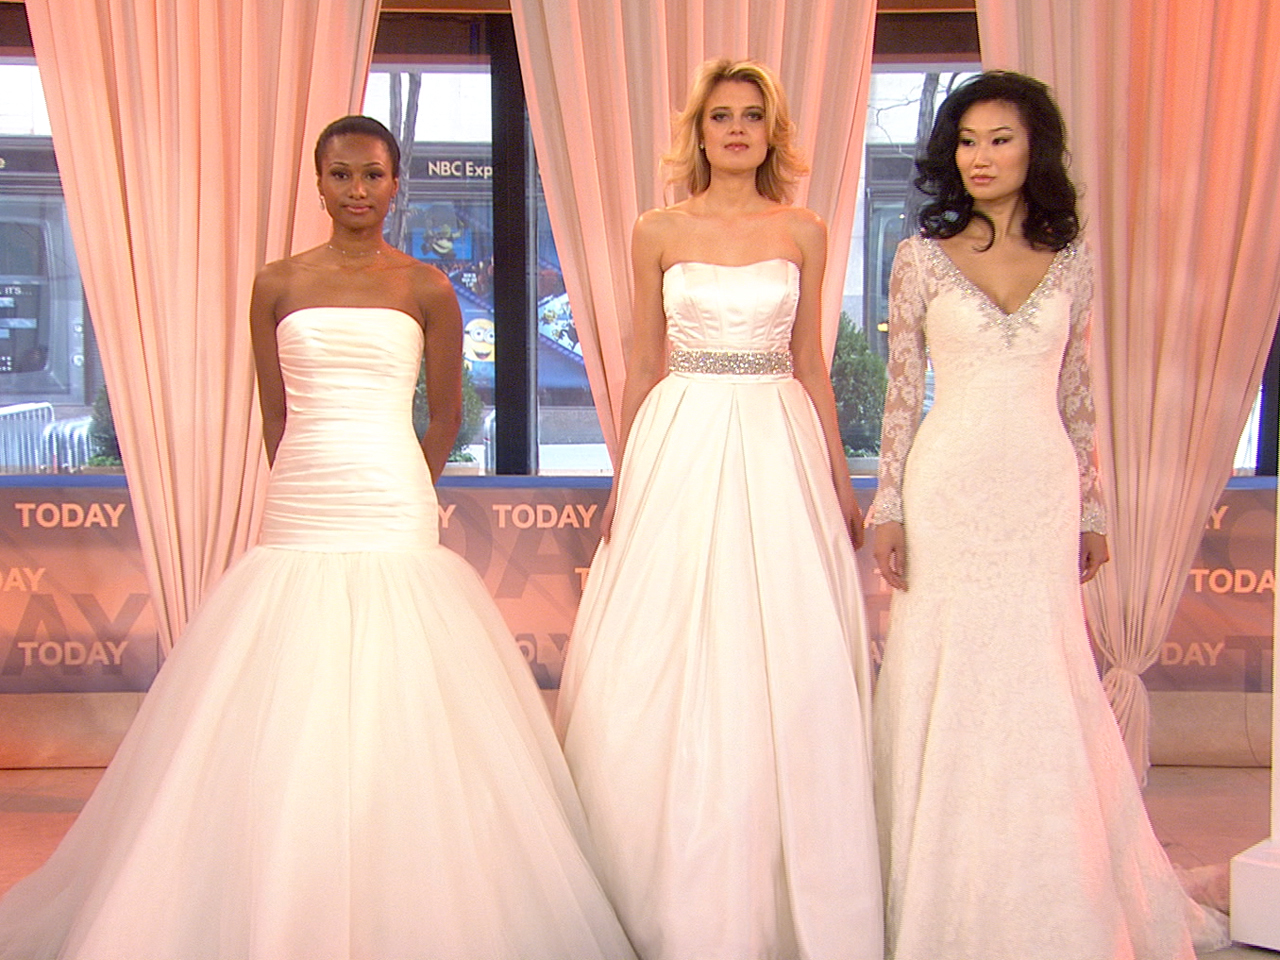 Wedding Carrie Underwood Wedding Dress wedding dresses inspired by carrie underwood j lo today com